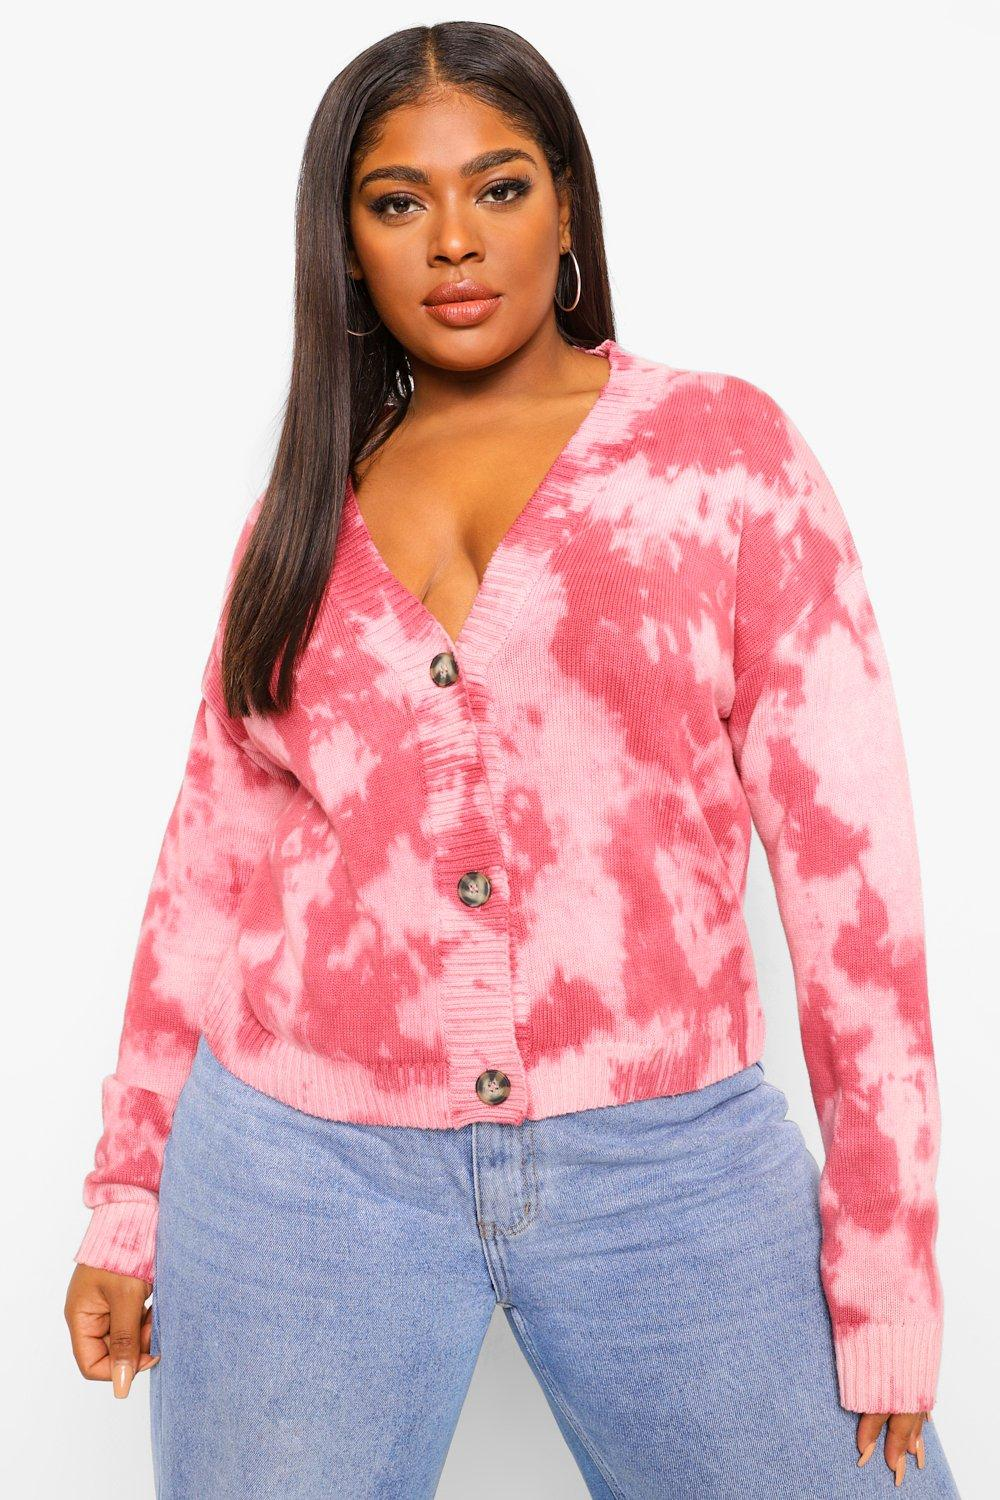 Plus Tie Dye Knitted Cardigan 15